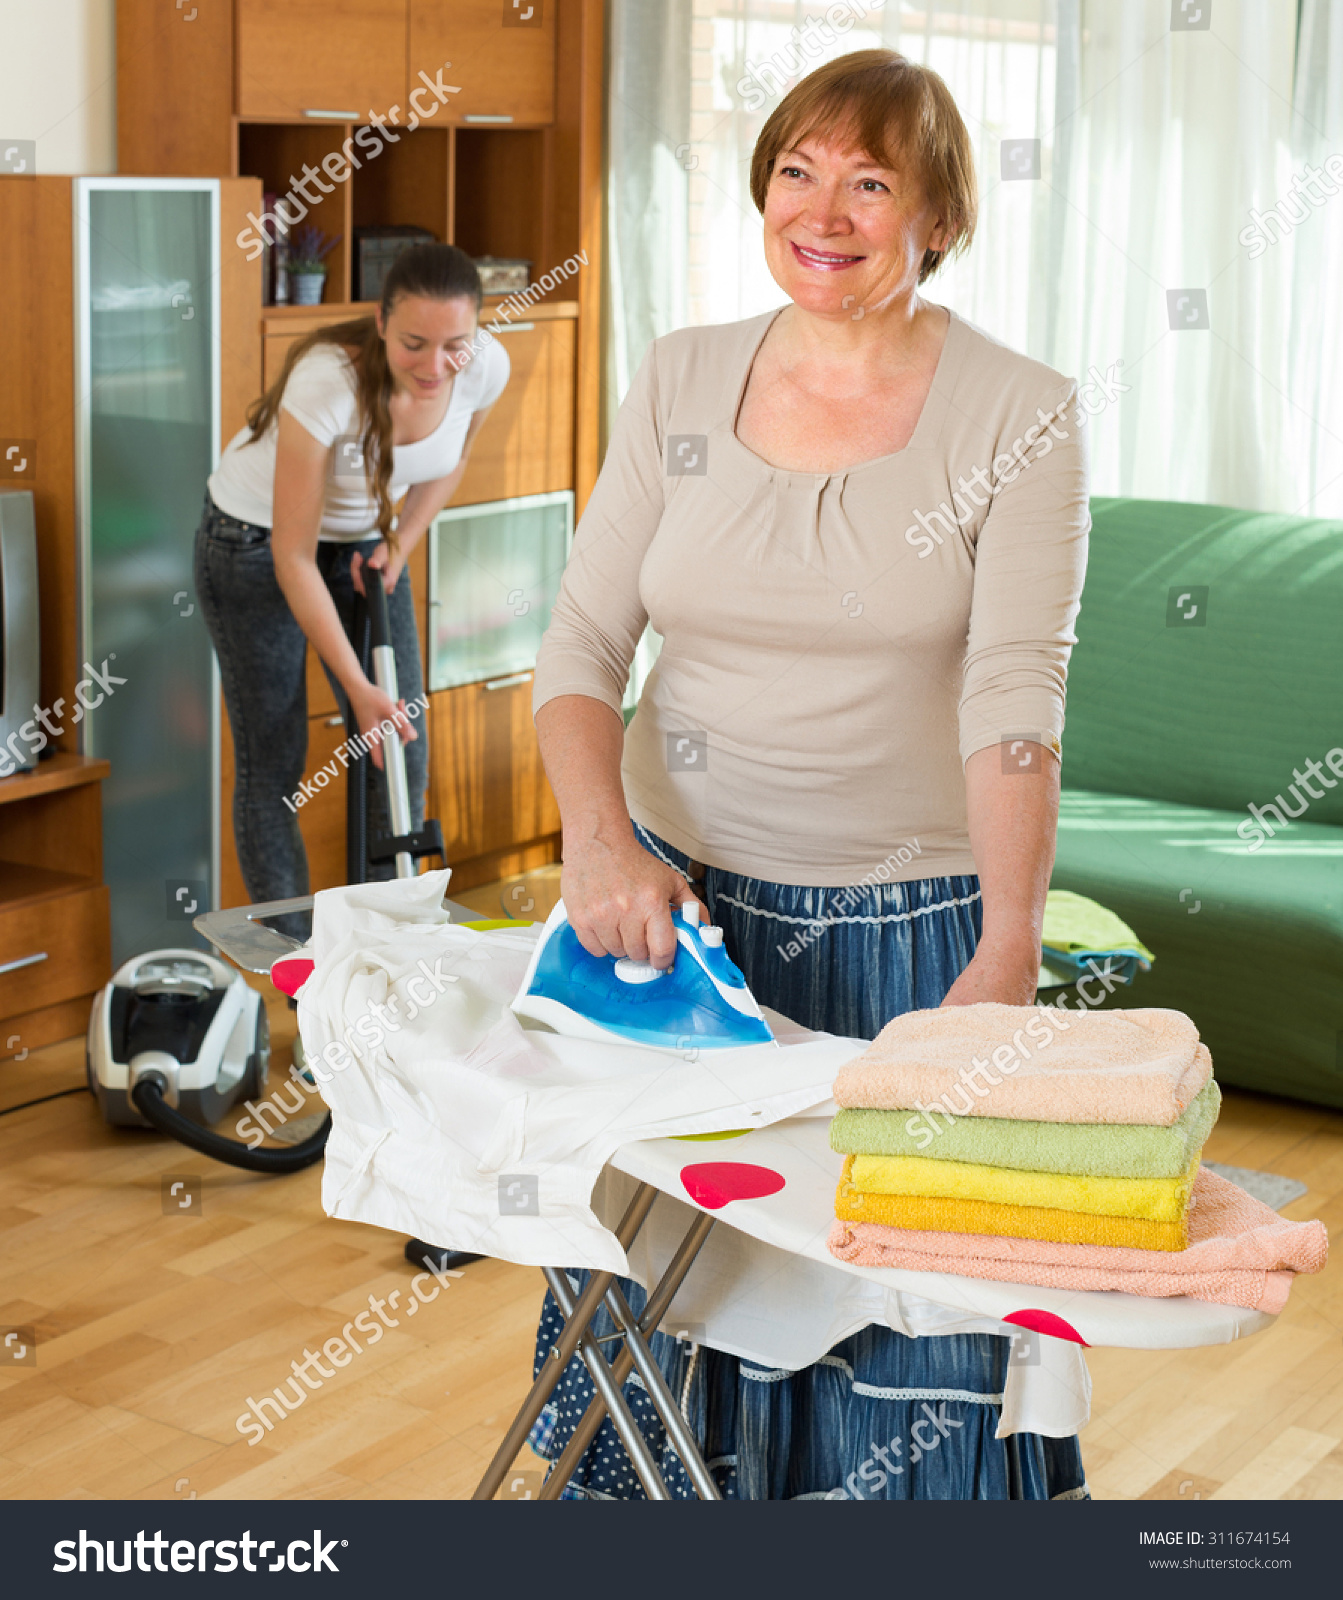 Mature woman young girl cleaning home stock photo for House cleaning stock photos